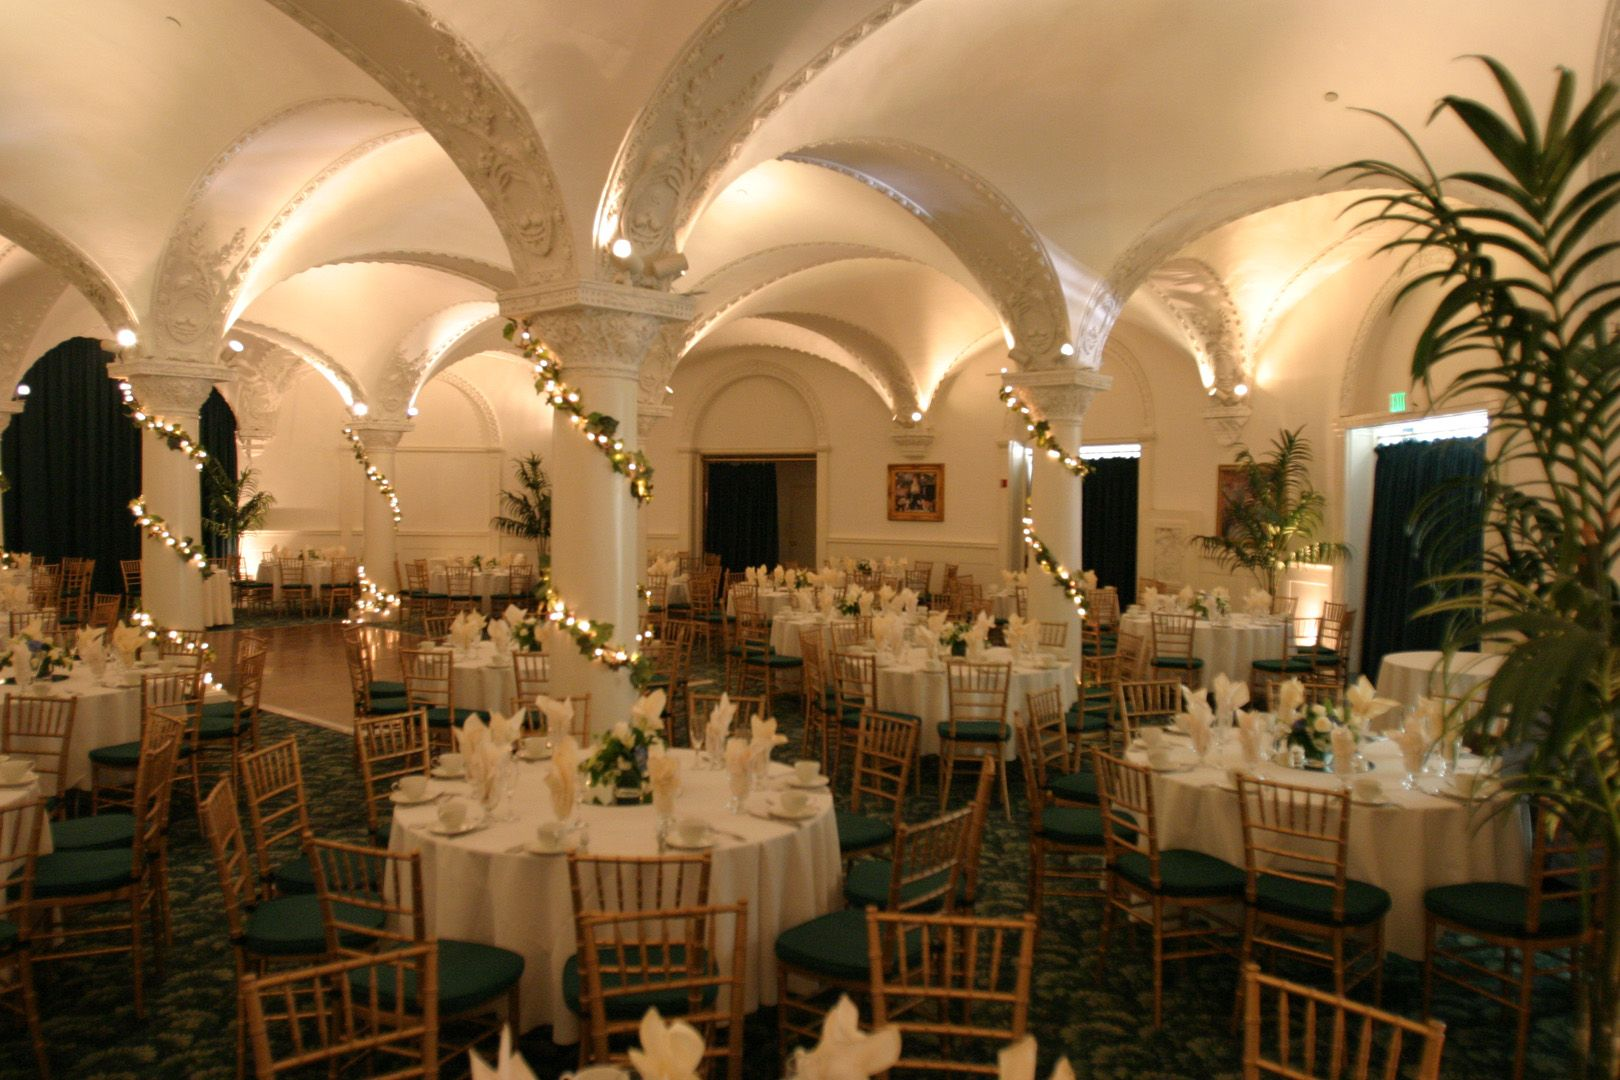 Check Out Platinumbanquet For The Best Banquet Halls And Wedding HallsEvent VenuesWedding